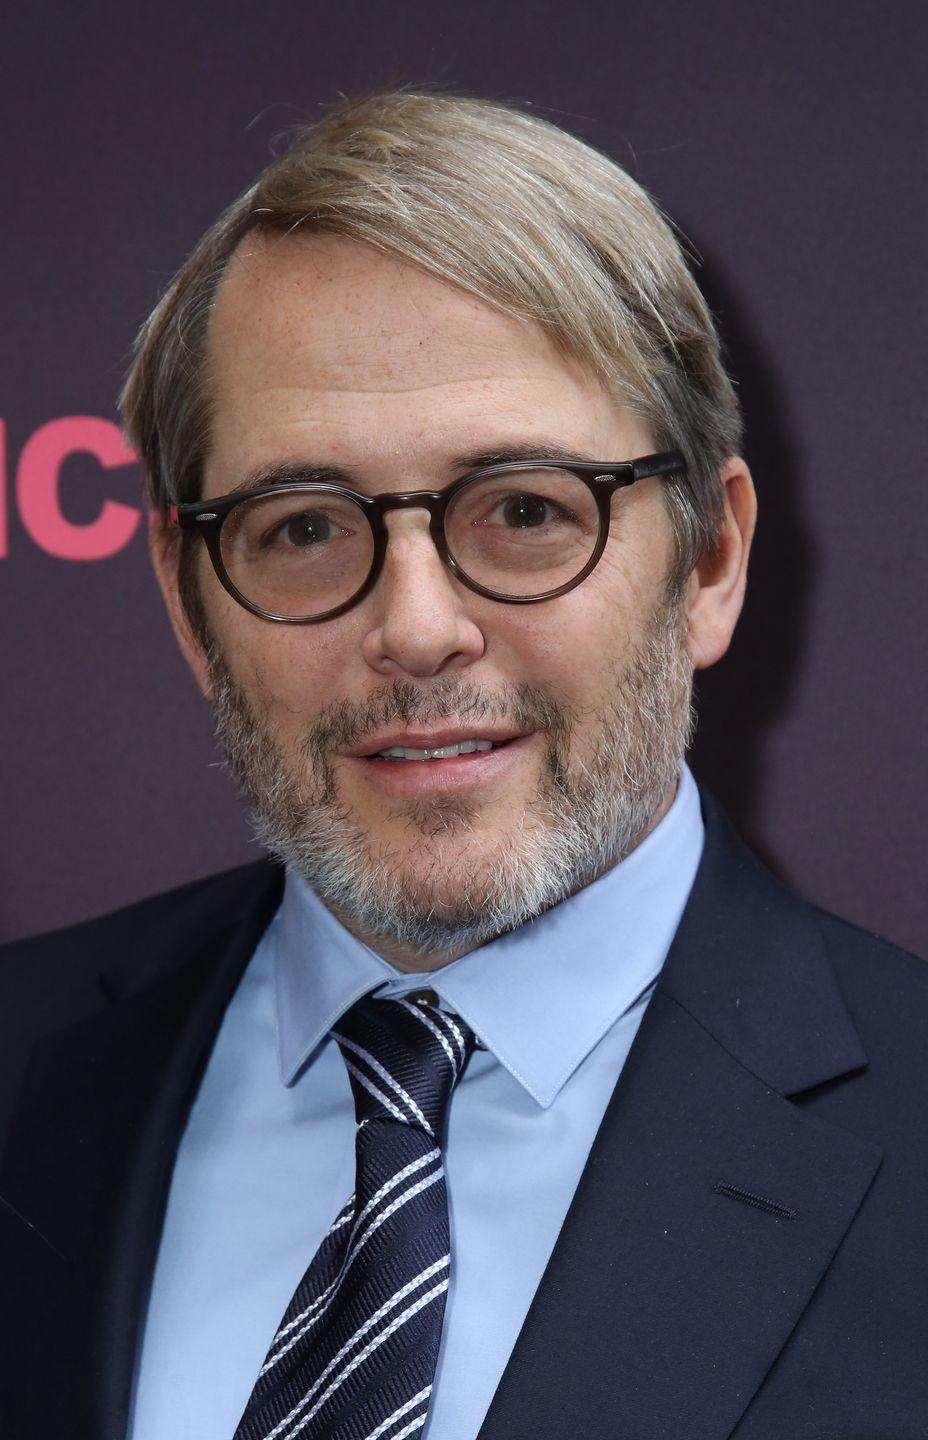 <p>Starting in the '90s, Broderick has enjoyed success on Broadway, winning a Tony Award for his performance in <em>How to Succeed in Business Without Really Trying. </em>He also had several roles alongside Nathan Lane, first in the stage version of <em>The Producers </em>in 2001<em>, </em>then later in the 2005 film adaptation. The same year, the two reunited in <em>The Odd Couple</em> on Broadway. Broderick is set to star alongside his wife, Sarah Jessica Parker, in the Broadway revival of <em>Plaza Suite.</em></p>